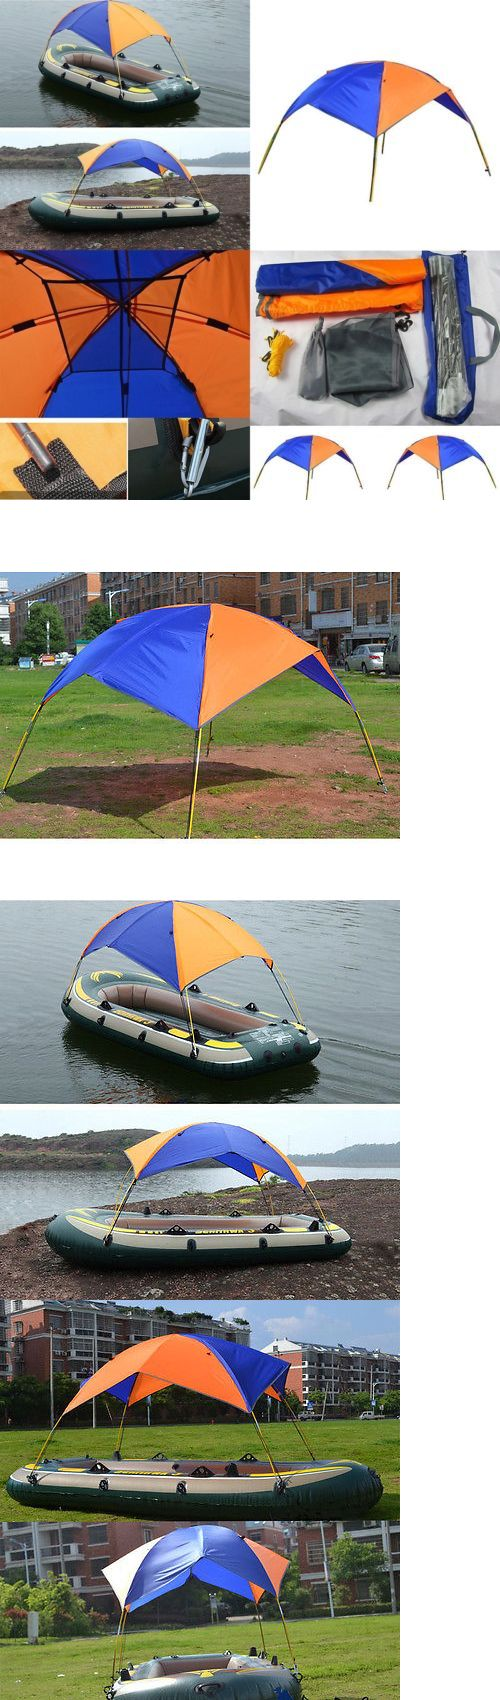 Tent and Canopy Accessories 36120: Portable Bimini Top Cover Sun Shelter Canopy For Inflatable Kayak Canoe Boat -> BUY IT NOW ONLY: $32.09 on eBay!